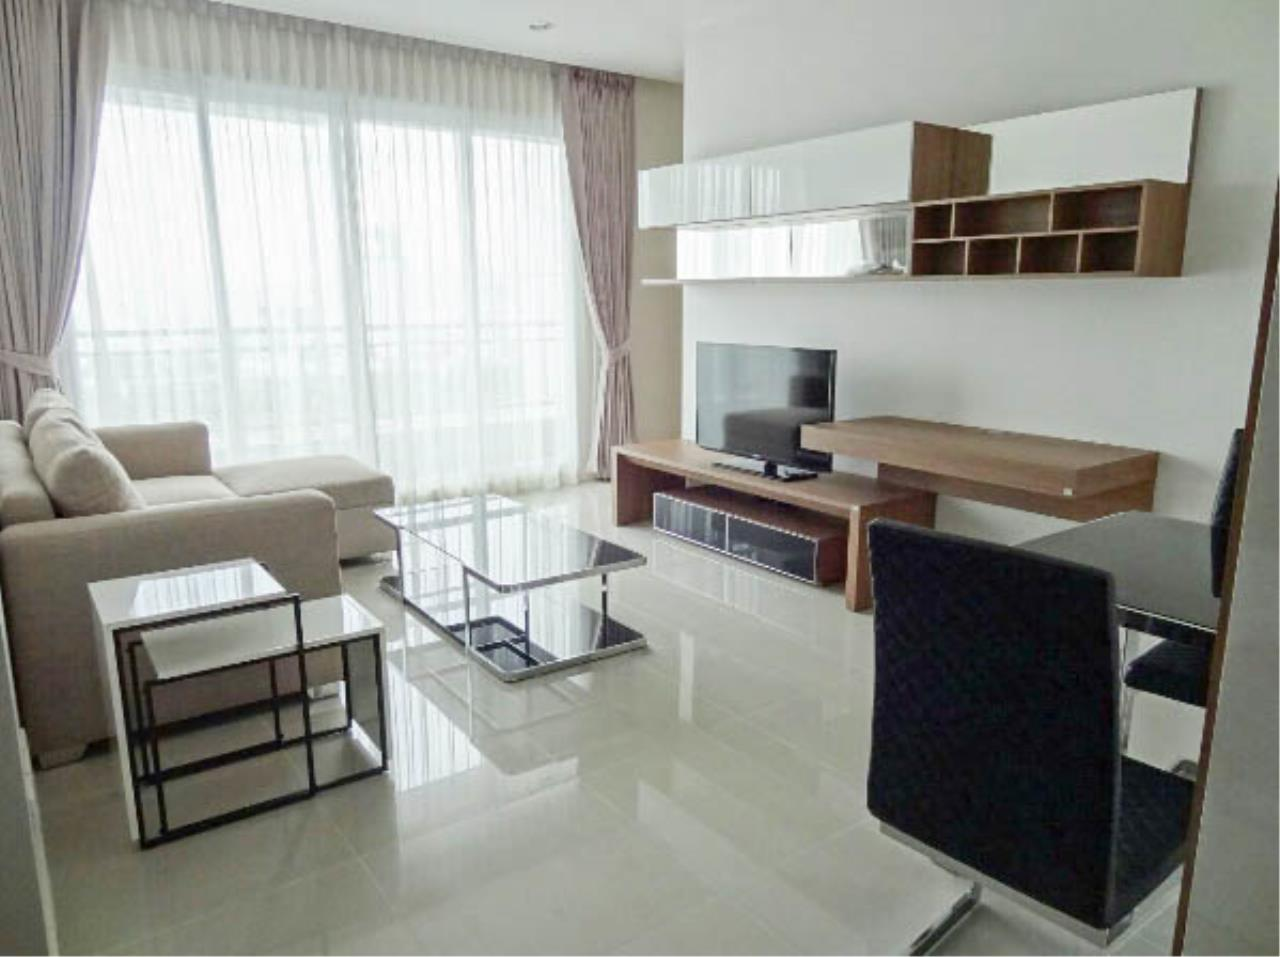 RE/MAX Properties Agency's 1 Bedroom for Rent Circle Condo Petchaburi 36 1